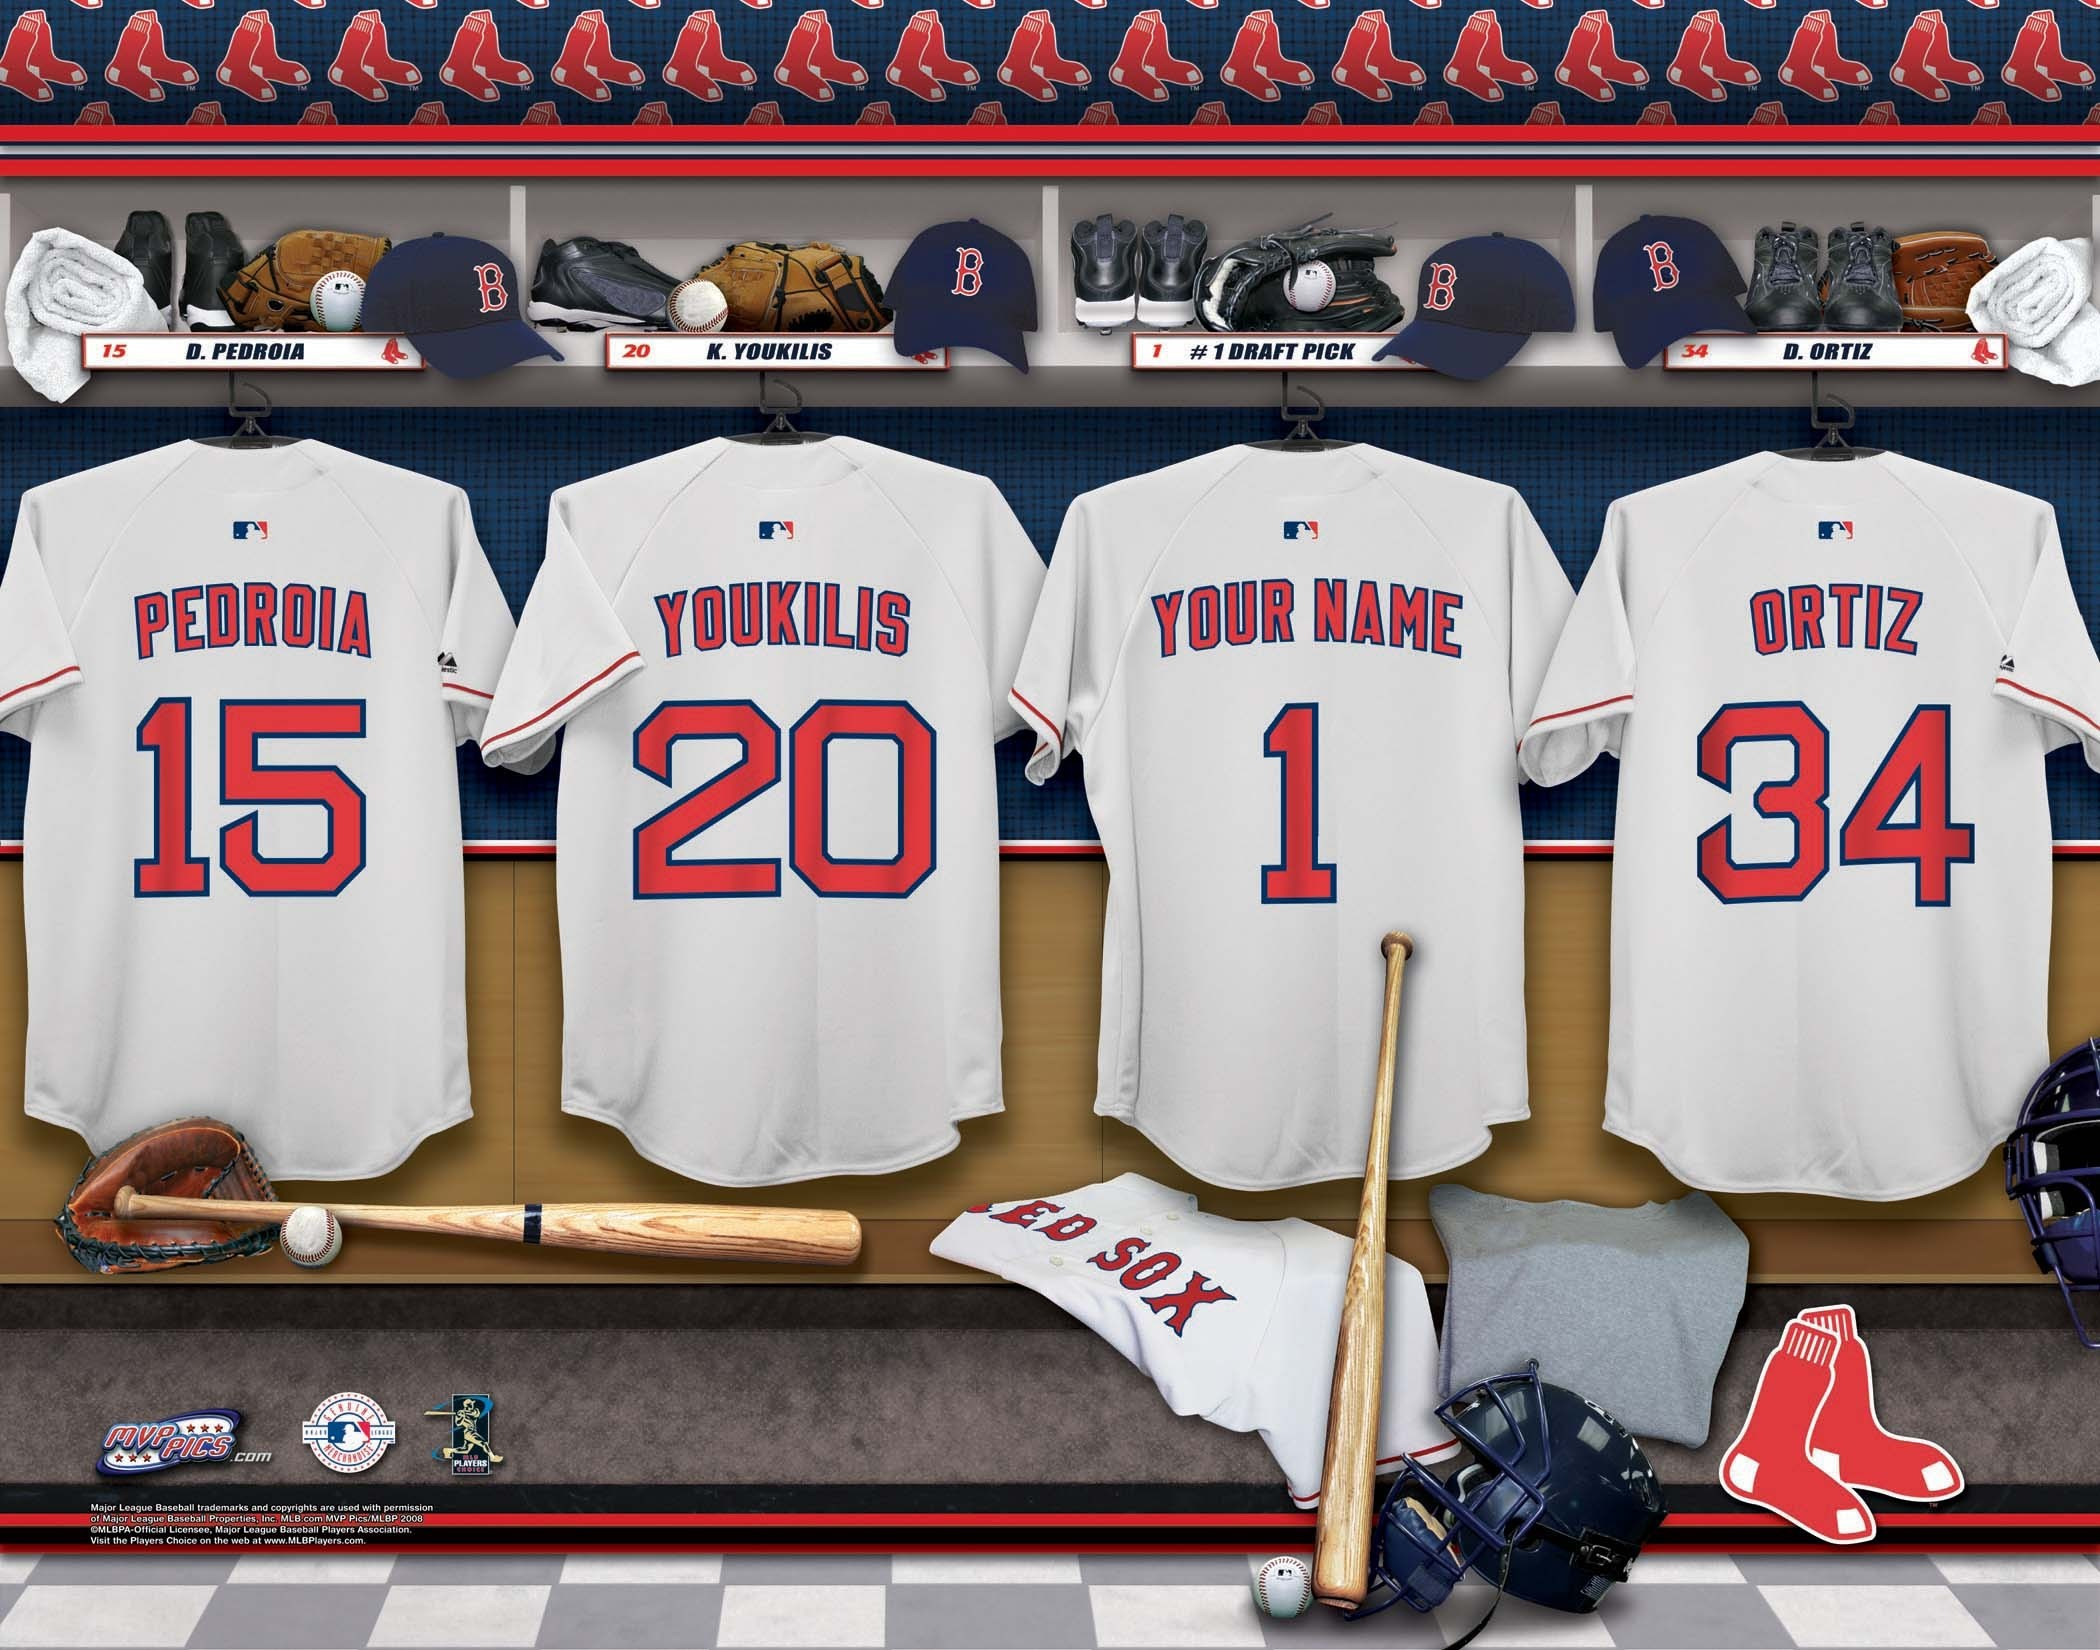 2100x1650 - Boston Red Sox Wallpaper Screensavers 49